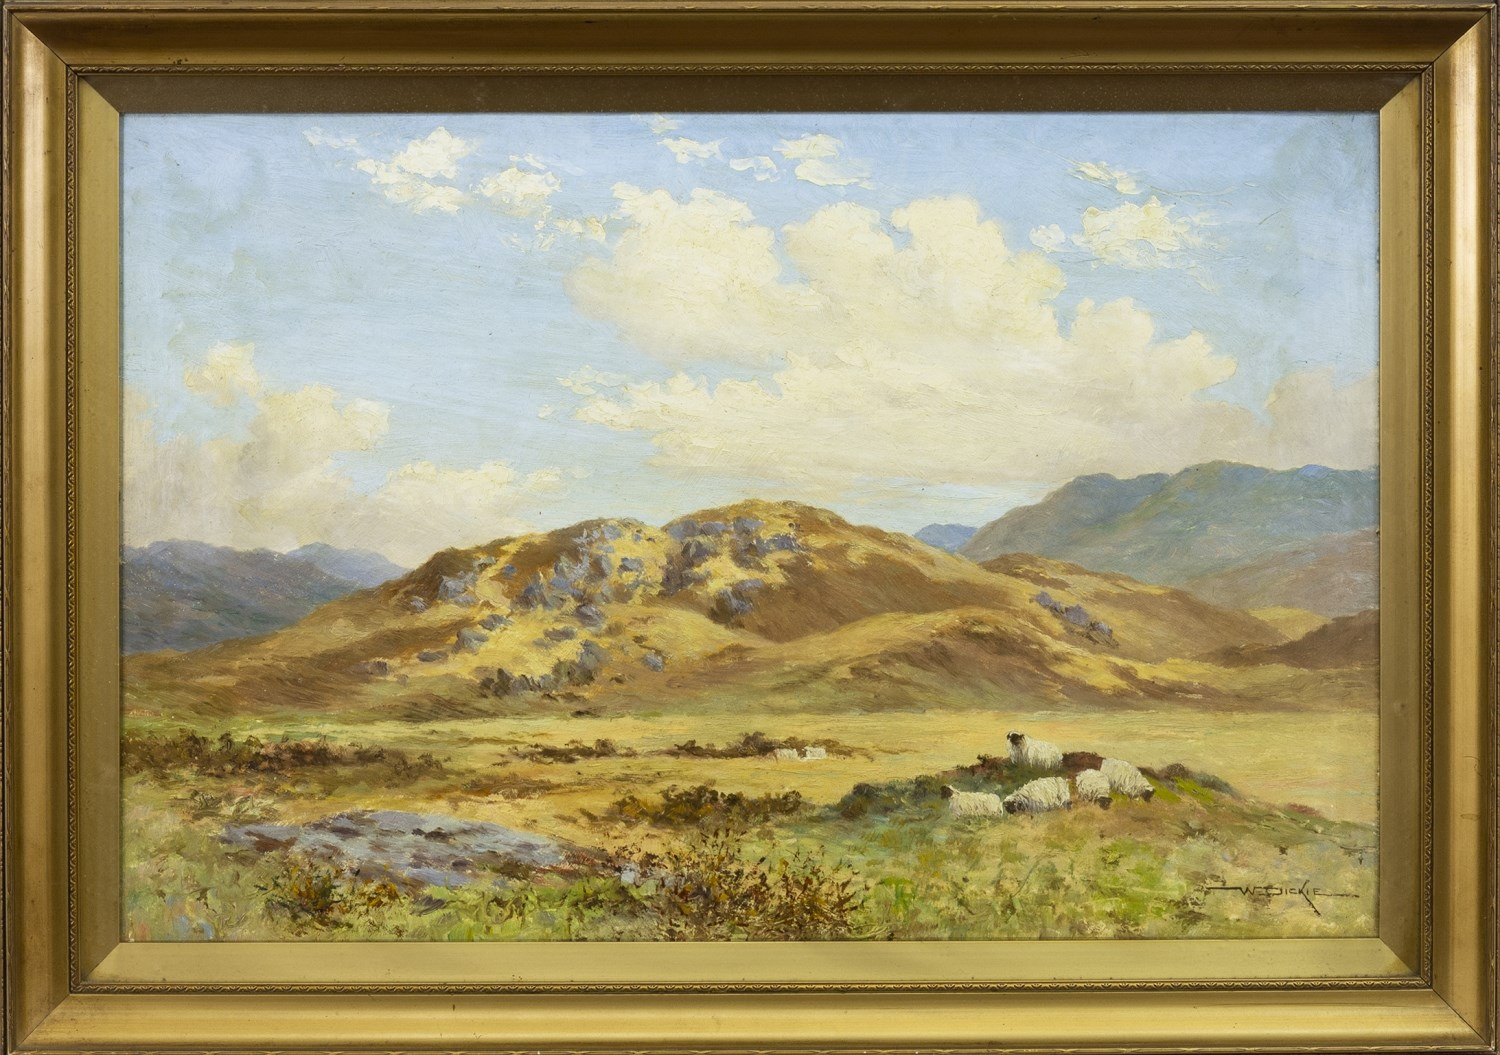 Lot 492 - HILLY LANDSCAPE WITH GROUP OF SHEEP TO THE FORE, AN OIL BY REV WILLIAM DICKIE